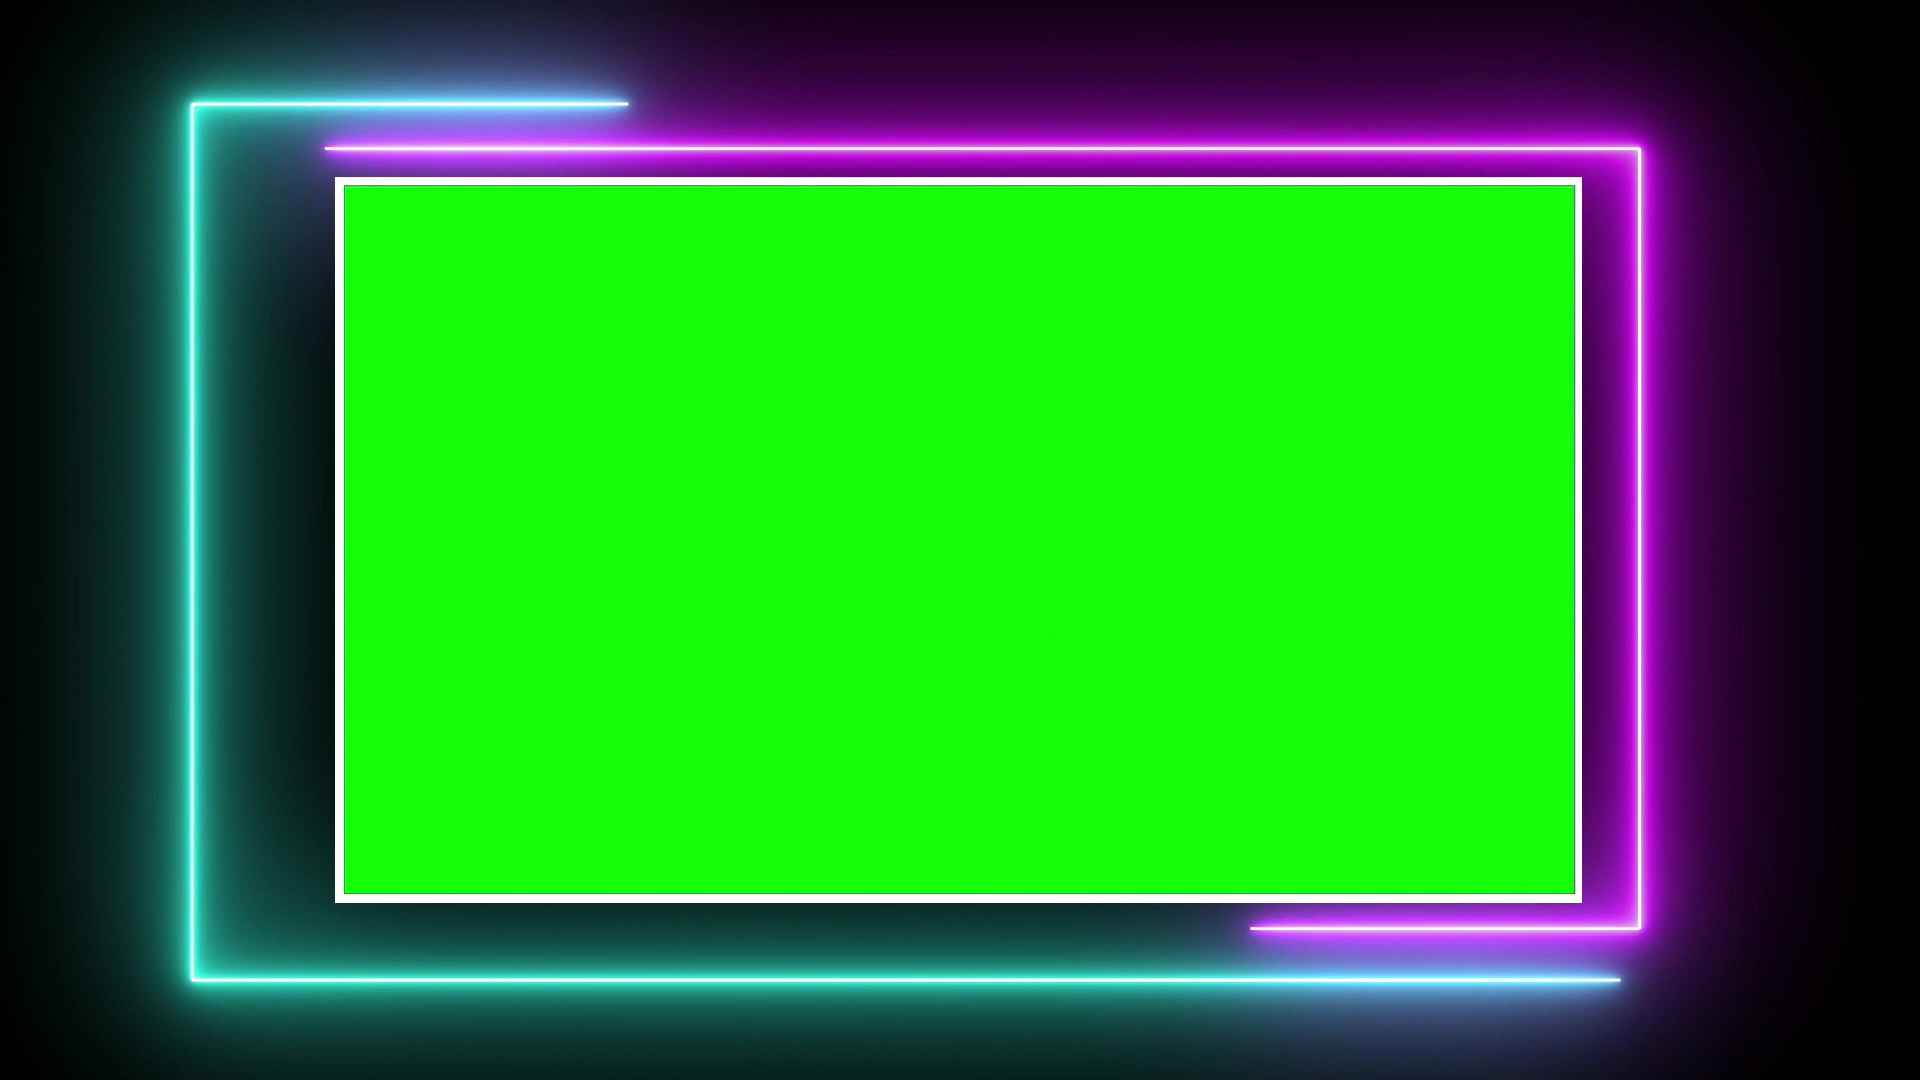 Neon Frame Animation with Green Screen Video